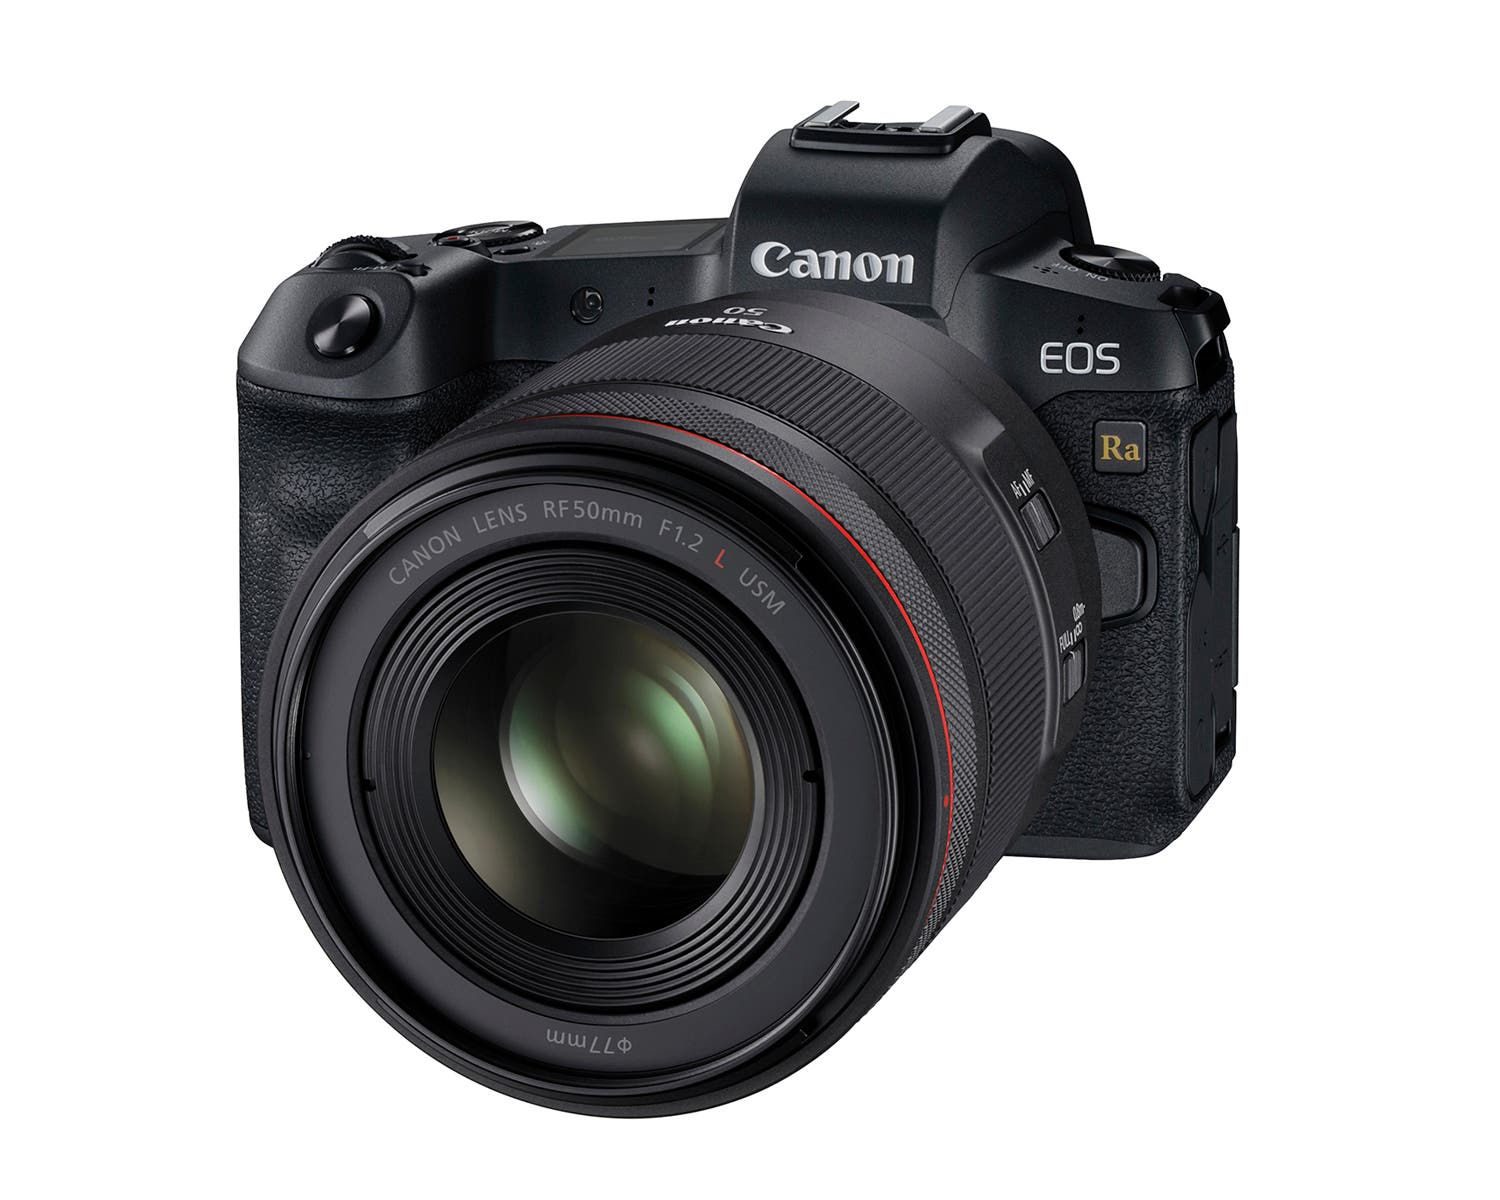 The Canon EOS Ra is Fine, But it's Not The Camera we Need or Want